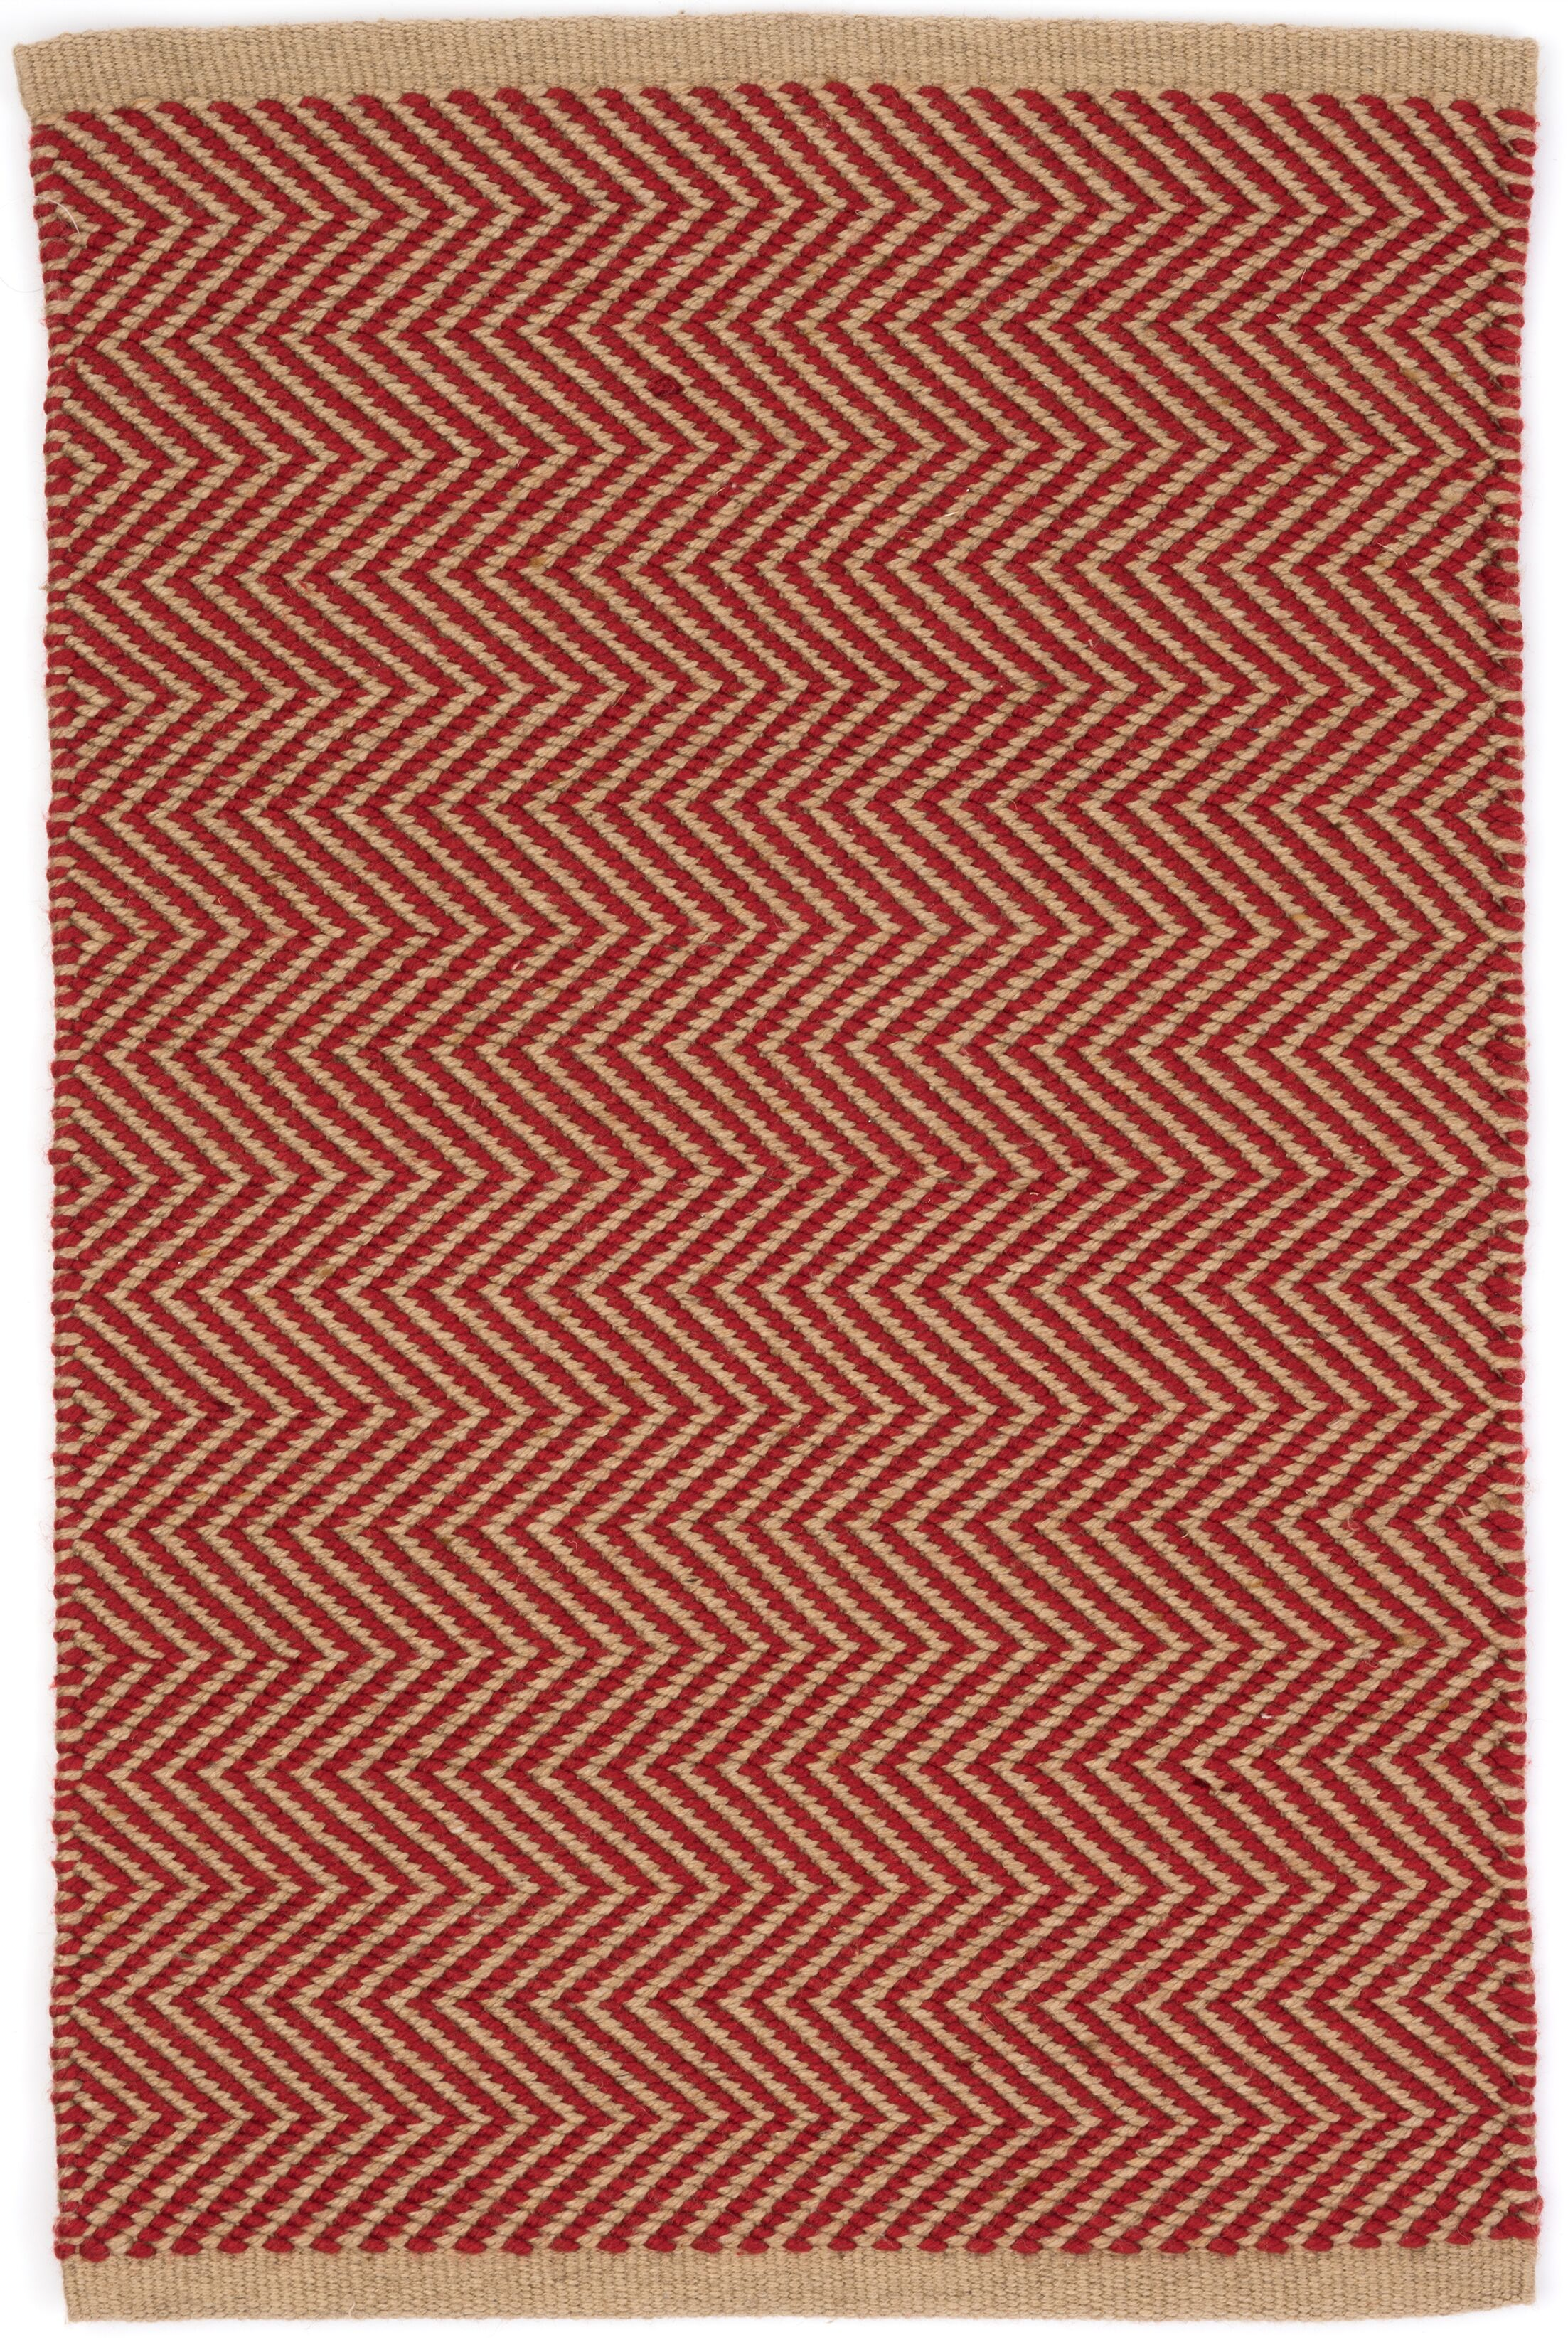 Arlington Hand-Woven Red Indoor/Outdoor Area Rug Rug Size: Rectangle 2' x 3'